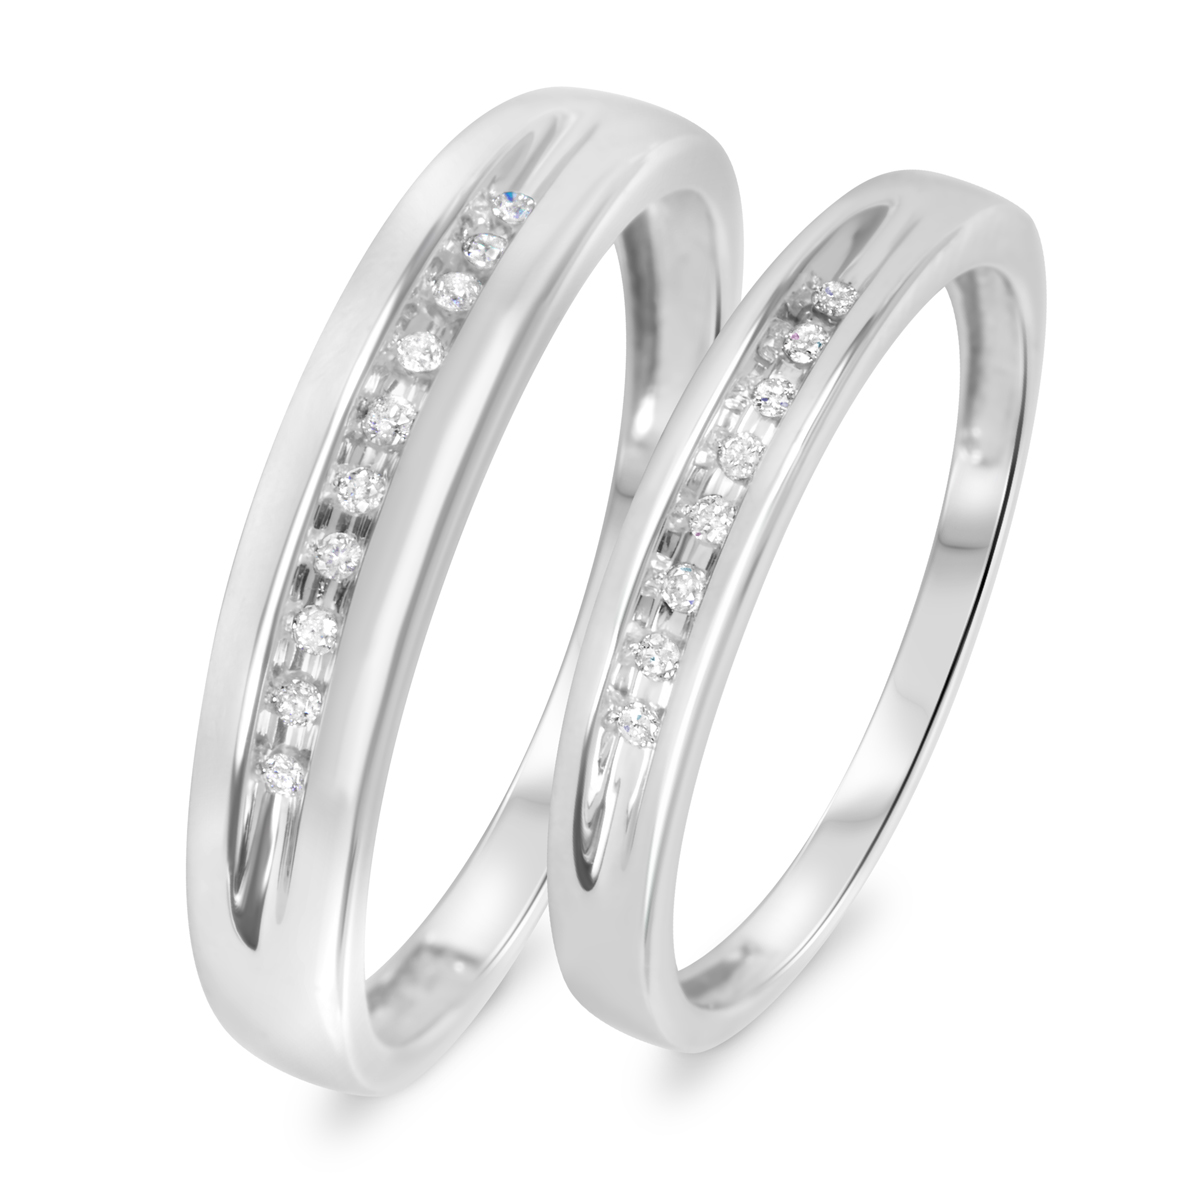 His And Her Wedding Bands.1 10 Carat T W Diamond His And Hers Wedding Rings 10k White Gold